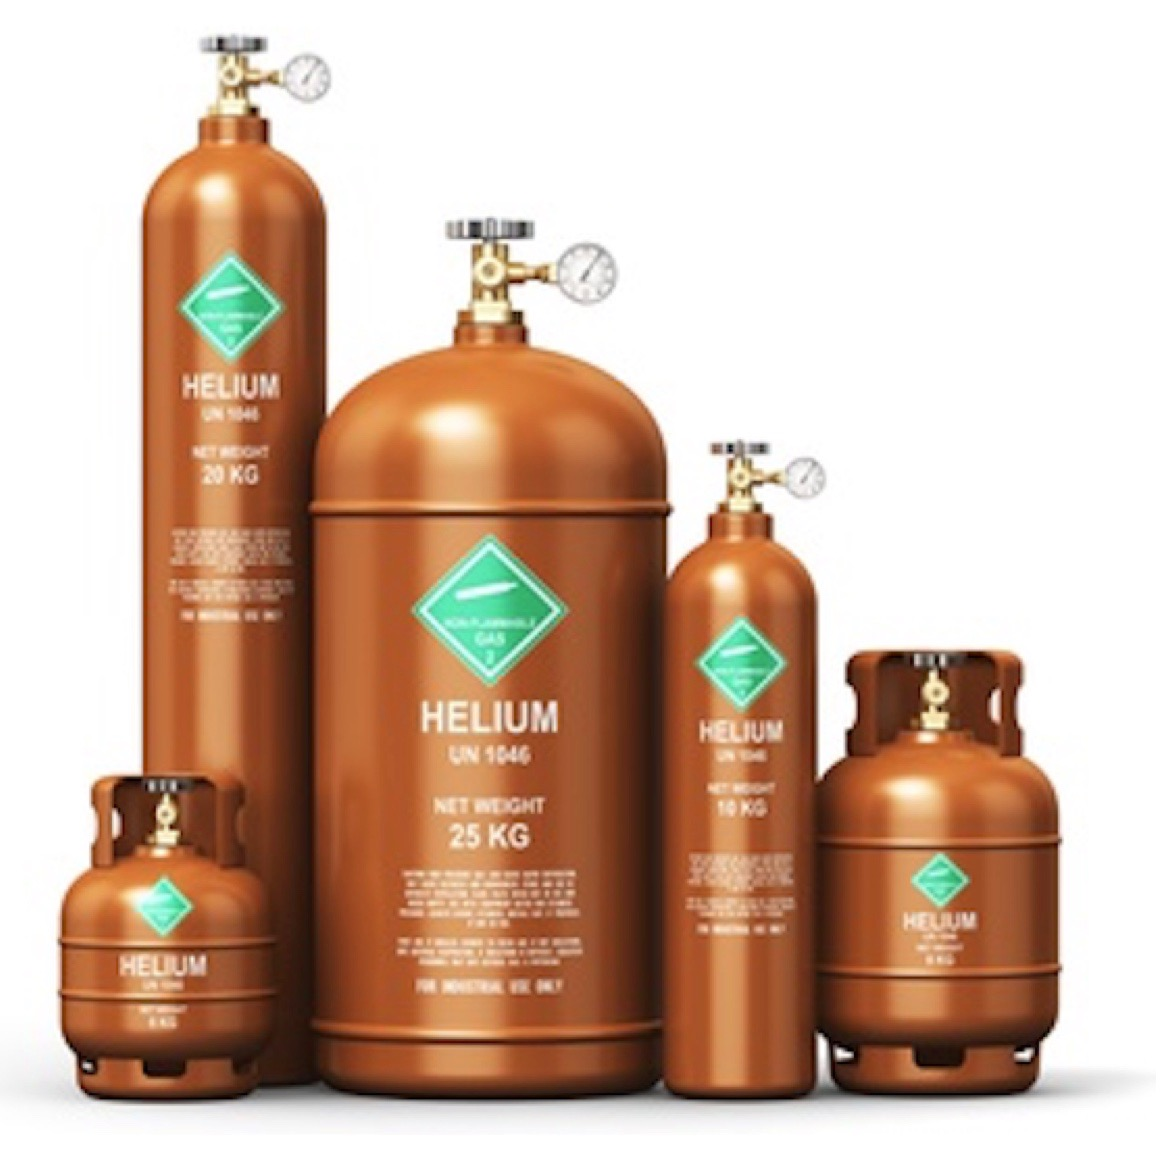 A range of helium canisters of varying sizes